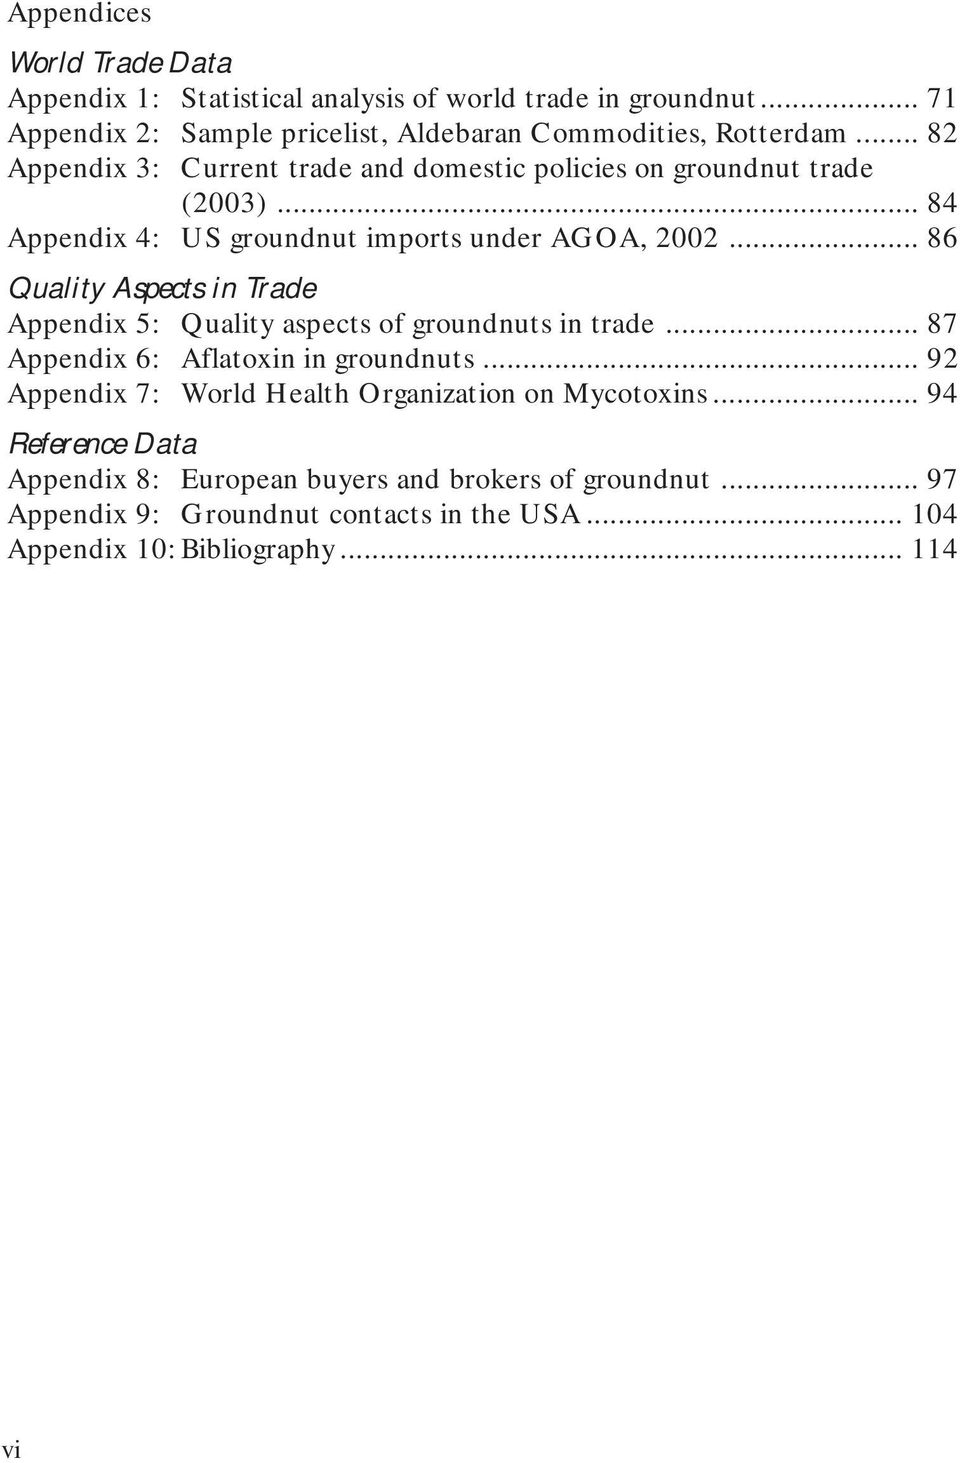 .. 86 Quality Aspects in Trade Appendix 5: Quality aspects of groundnuts in trade... 87 Appendix 6: Aflatoxin in groundnuts.